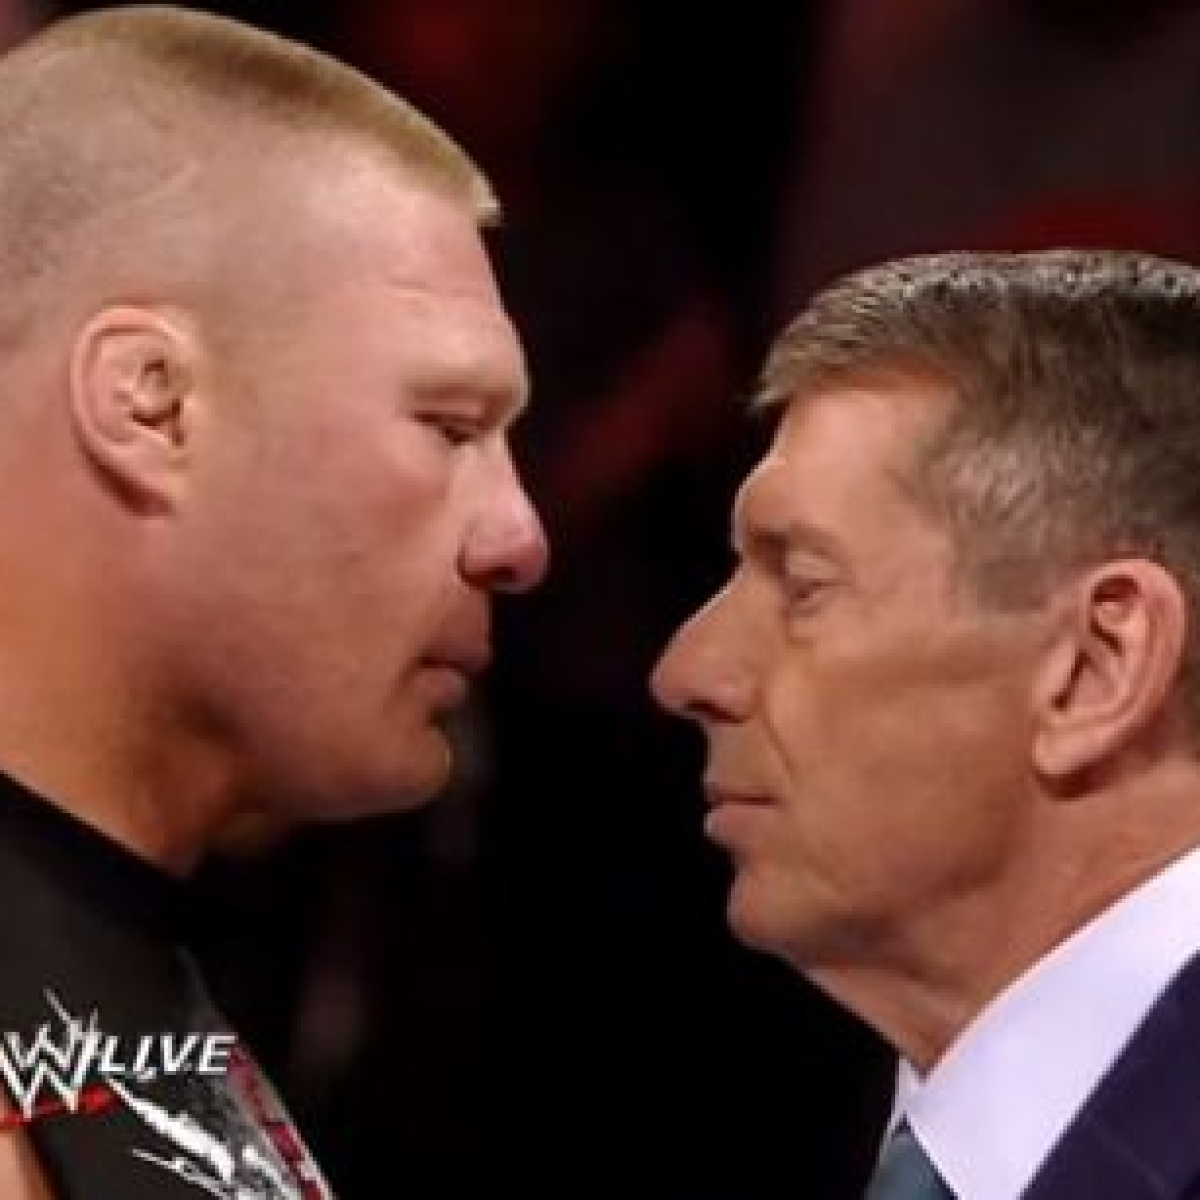 'He would have married him right there': WWE Hall of Famer Jim Ross reveals Brock Lesnar's first impression on Vince McMahon